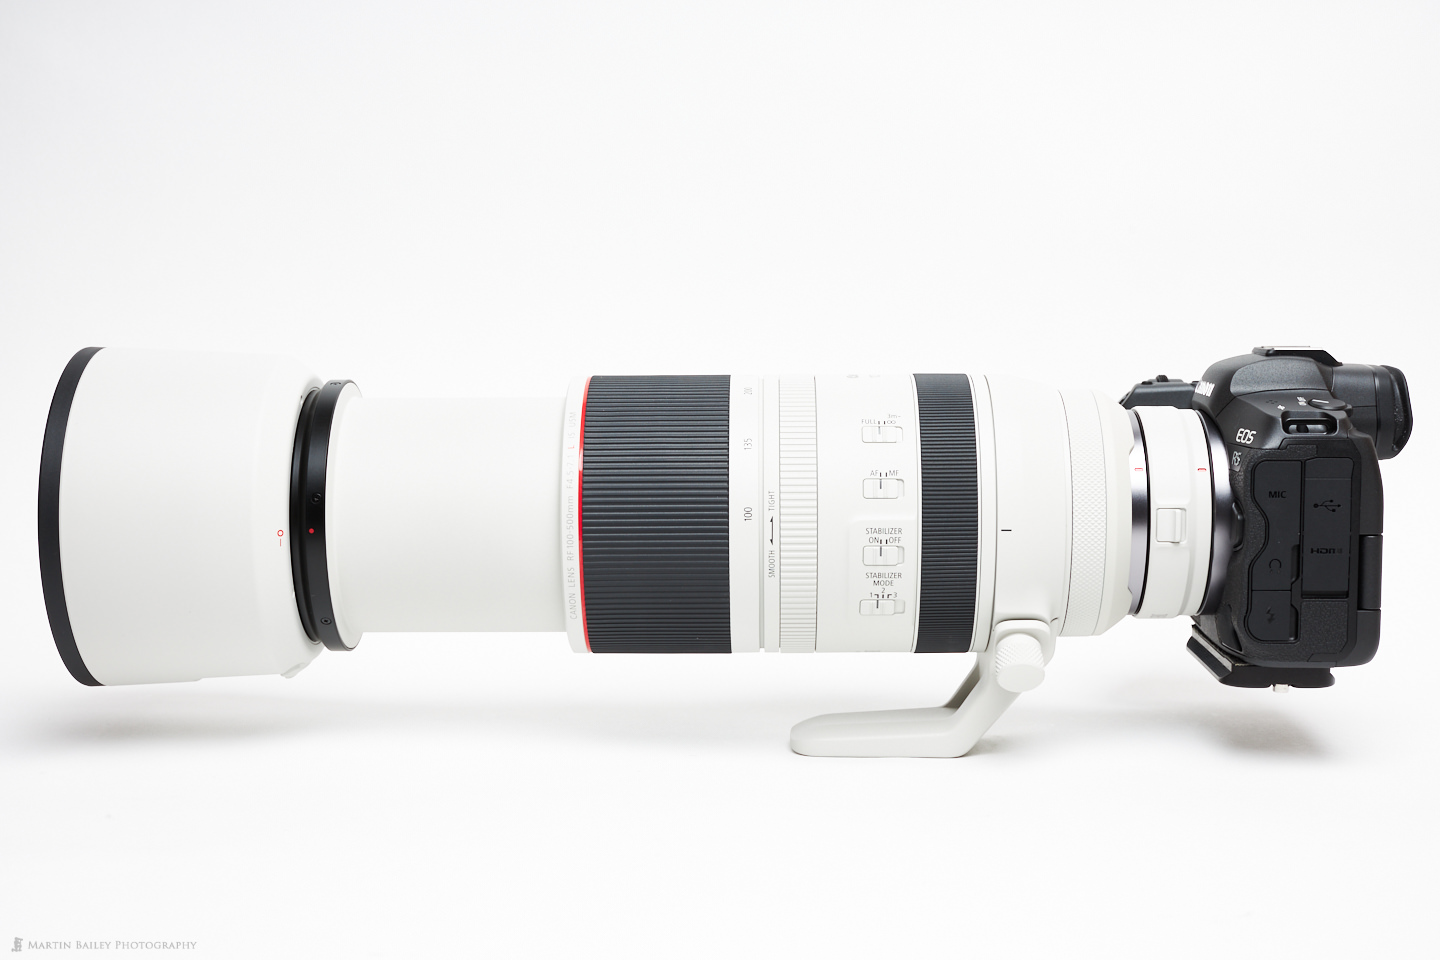 EOS R5 with RF 100-500mm Lens and RF 1.4X Extender